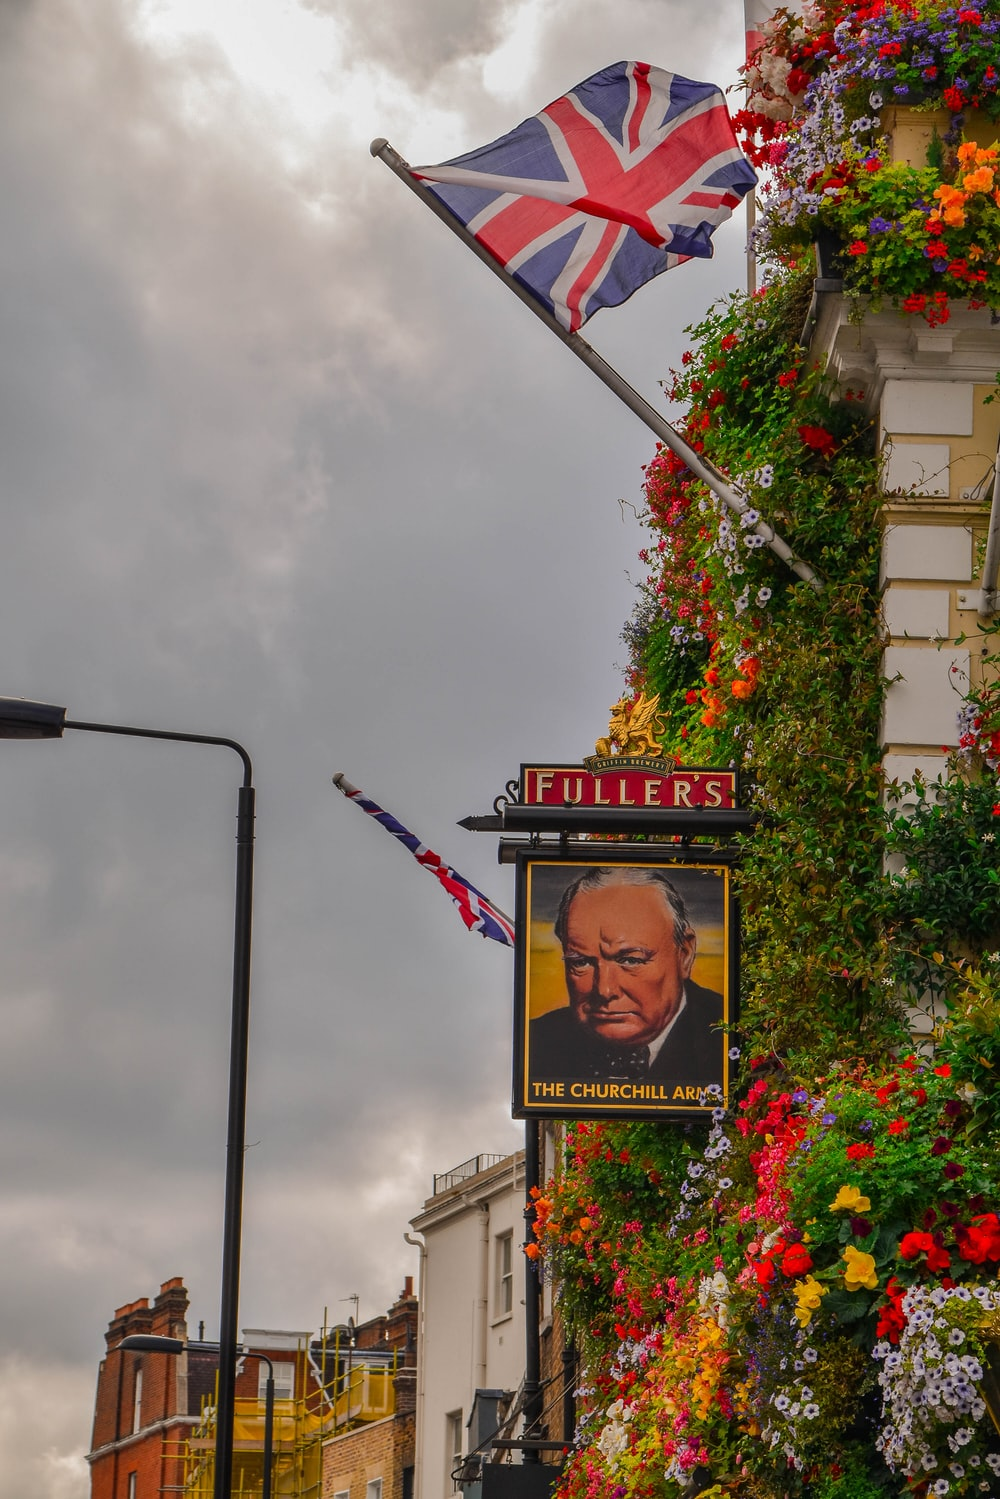 Fullers signage